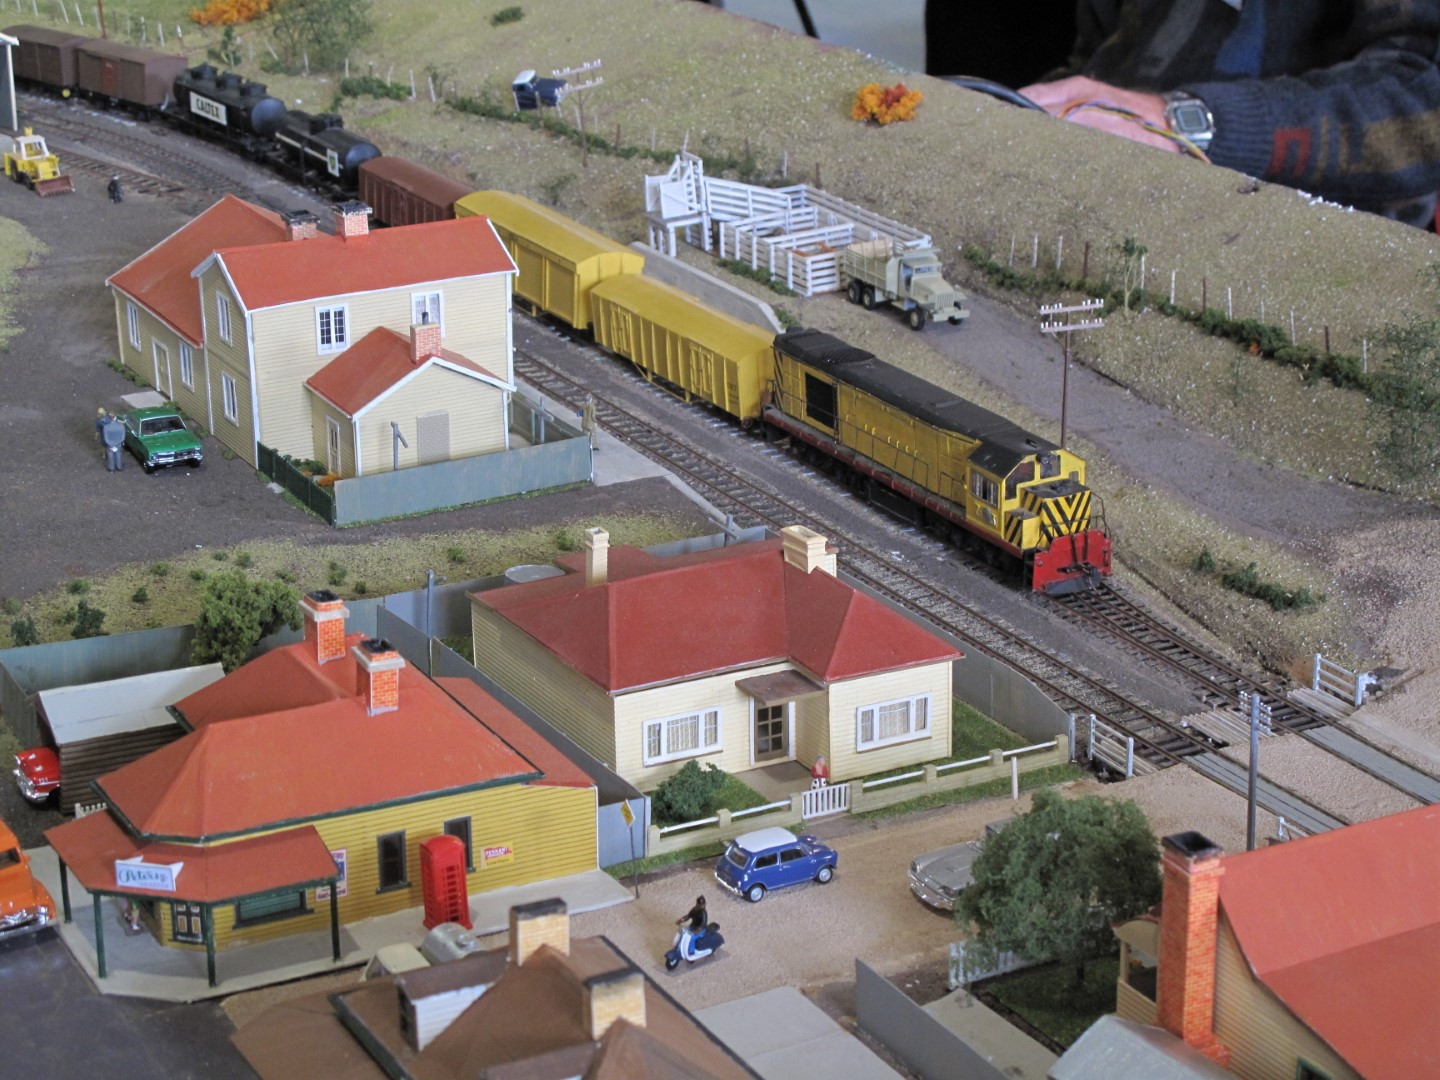 Hobatr Model Train show_063 (Large).jpeg